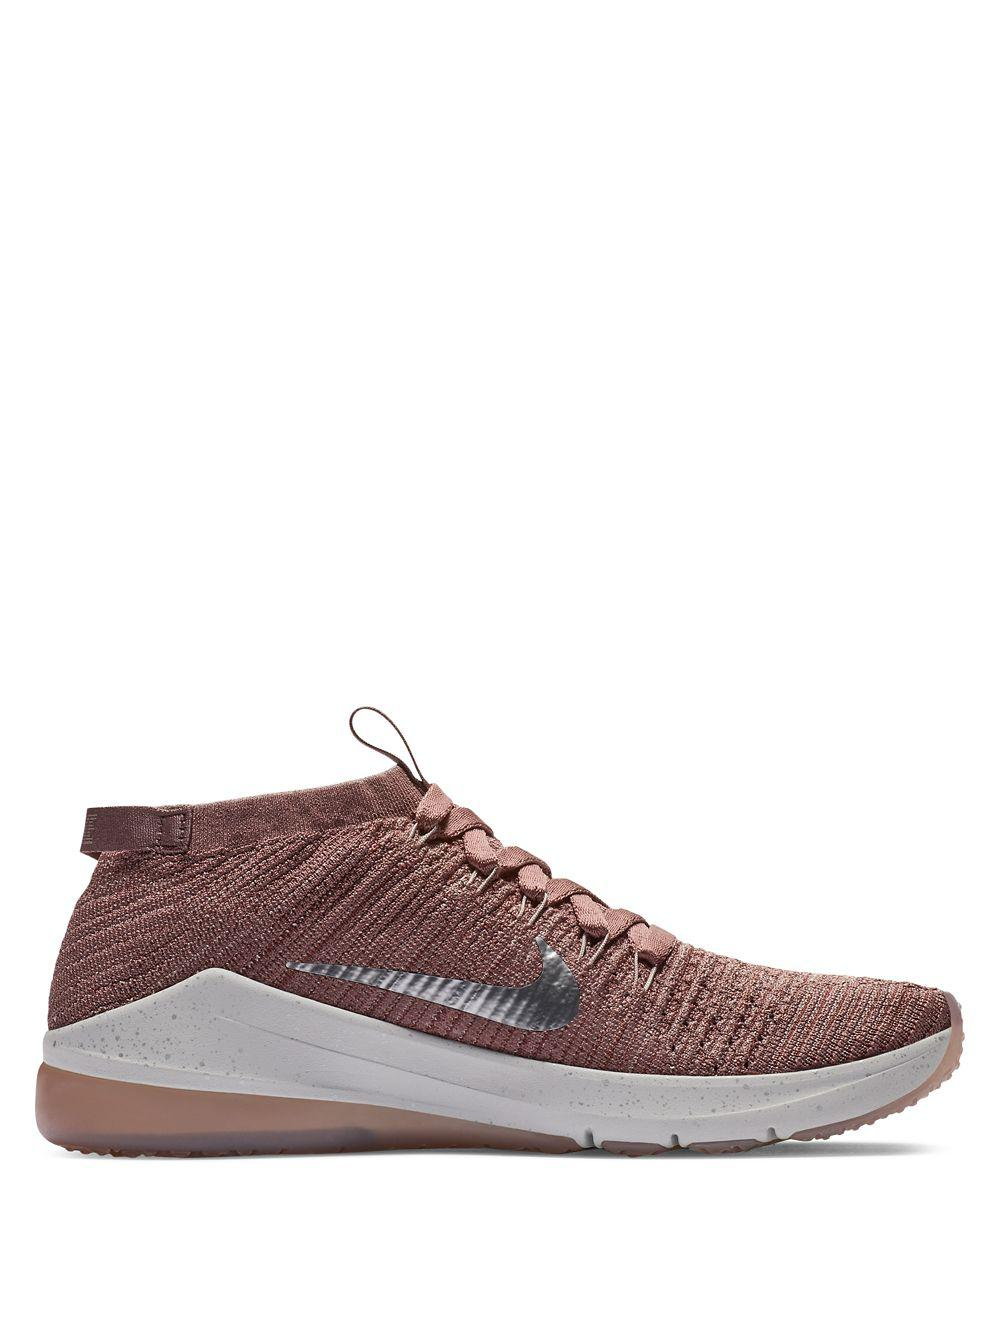 quality design e7688 fcb2f Nike. Women s Air Zoom Fearless Flyknit 2 Lm Training Shoes